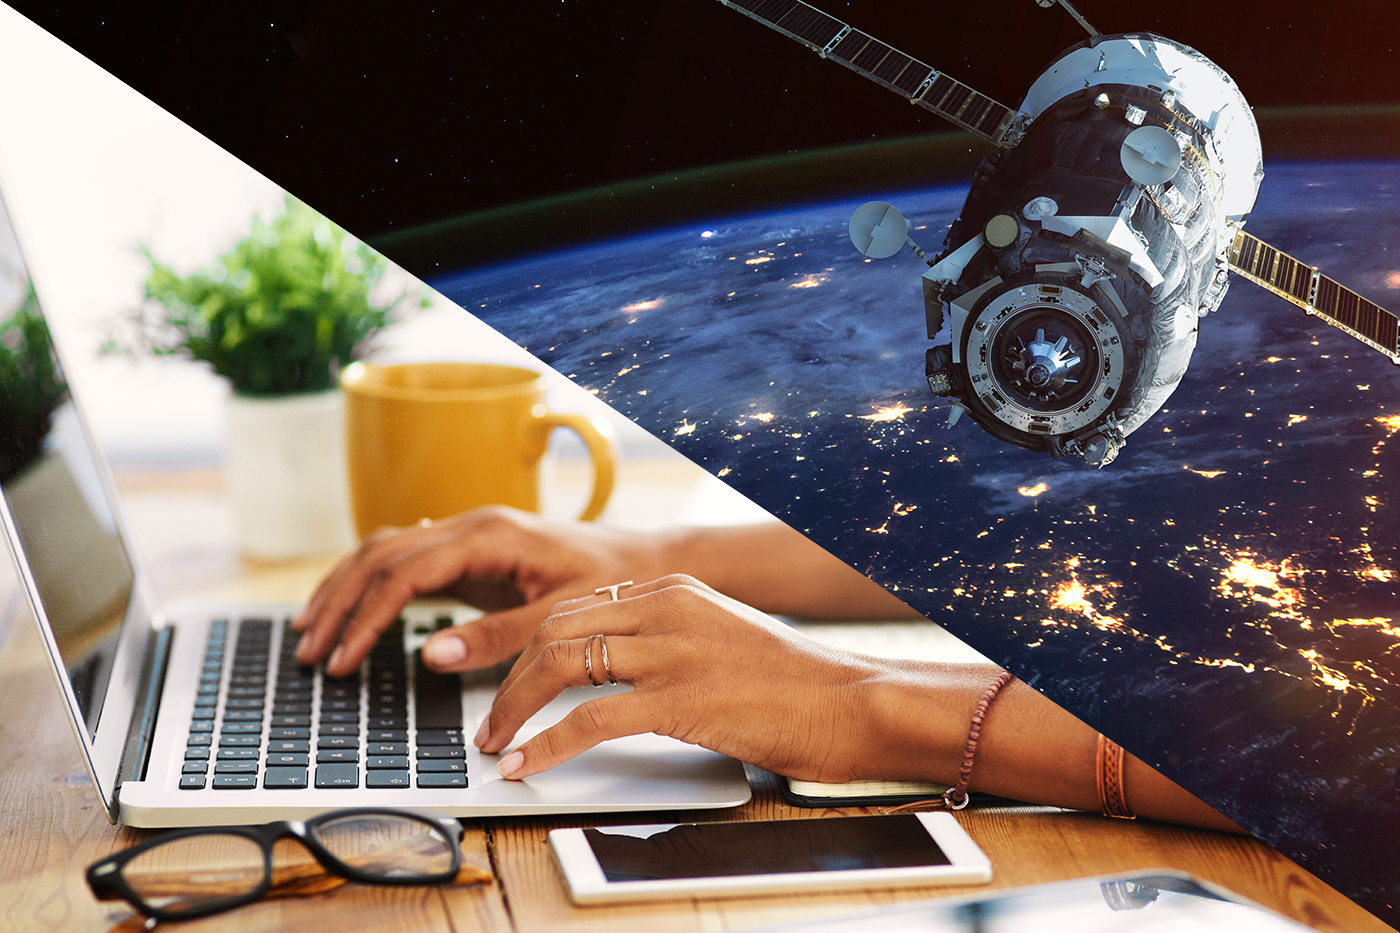 A split image of satellite in space on one side and woman's hands typing laptop on the other